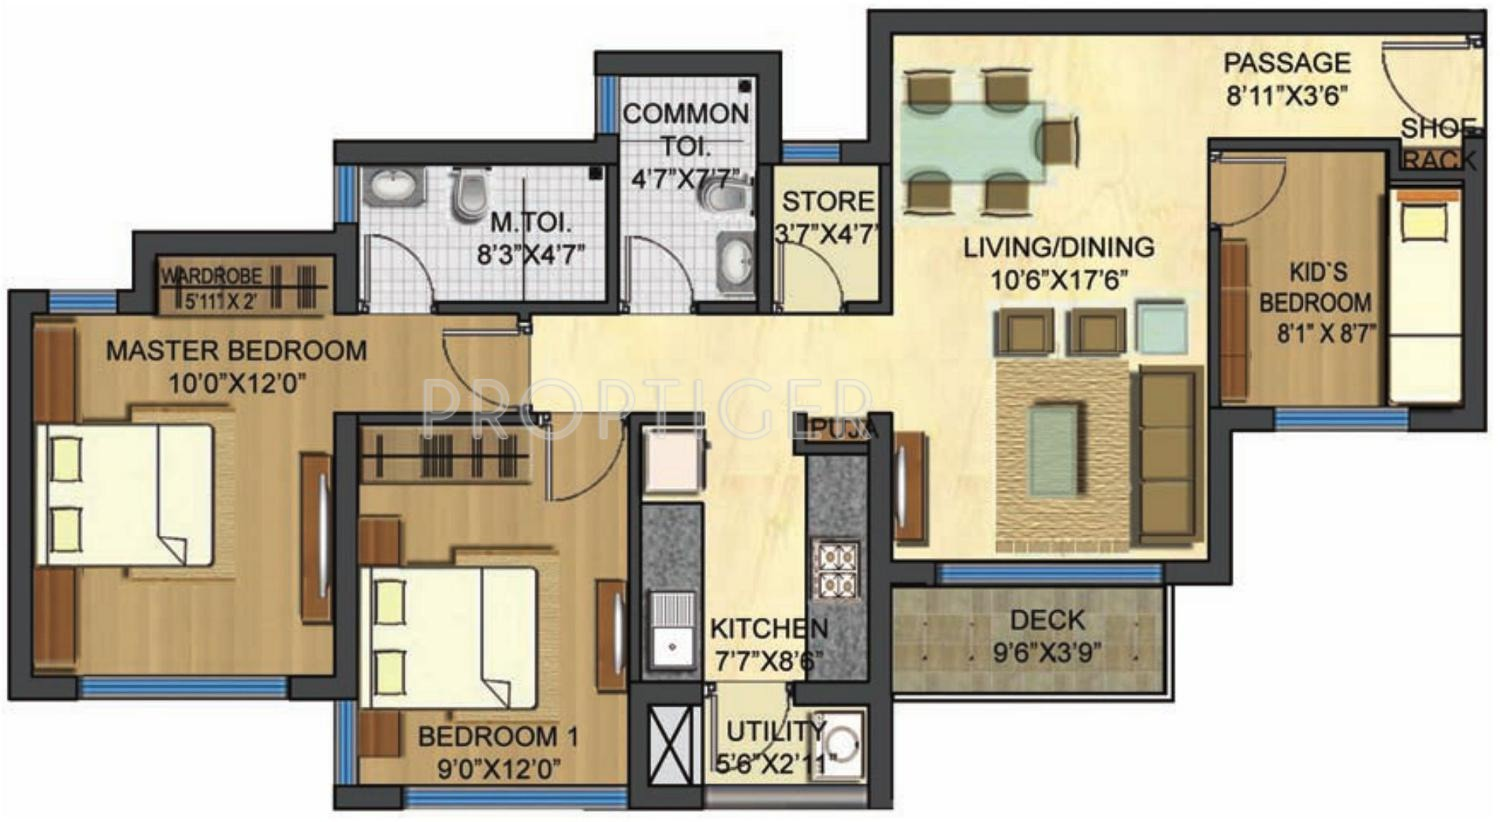 Lodha Casa Bella In Dombivali Mumbai Price Location